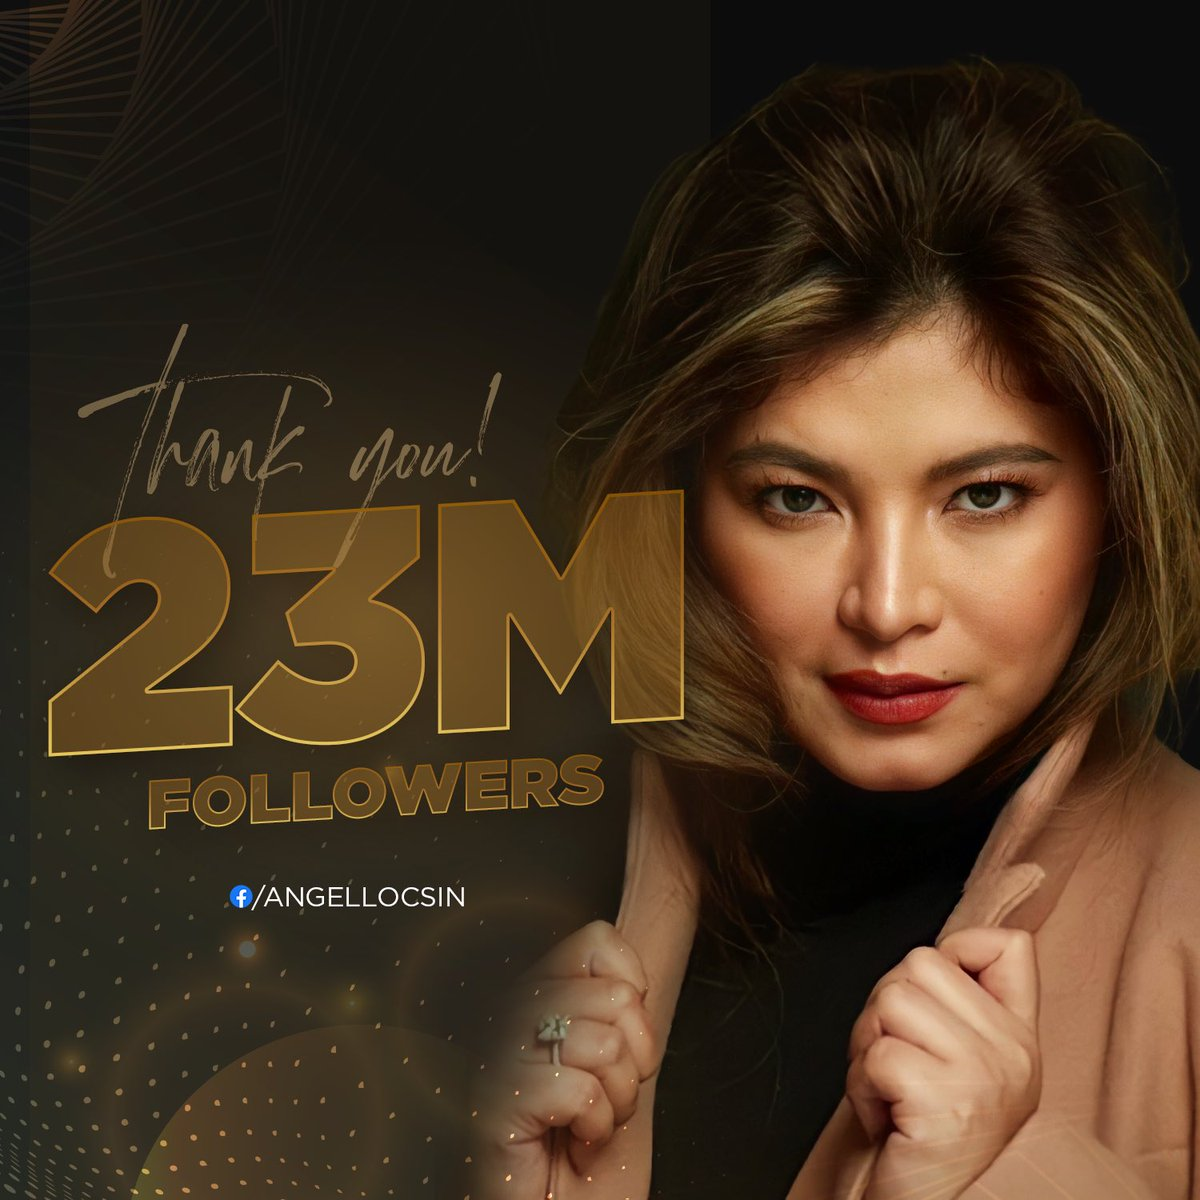 We are now 23 Million strong! Thank you so much everyone ❤️ 🎉   @143redangel  [Team Angel PH] https://t.co/x38rfSEUwg